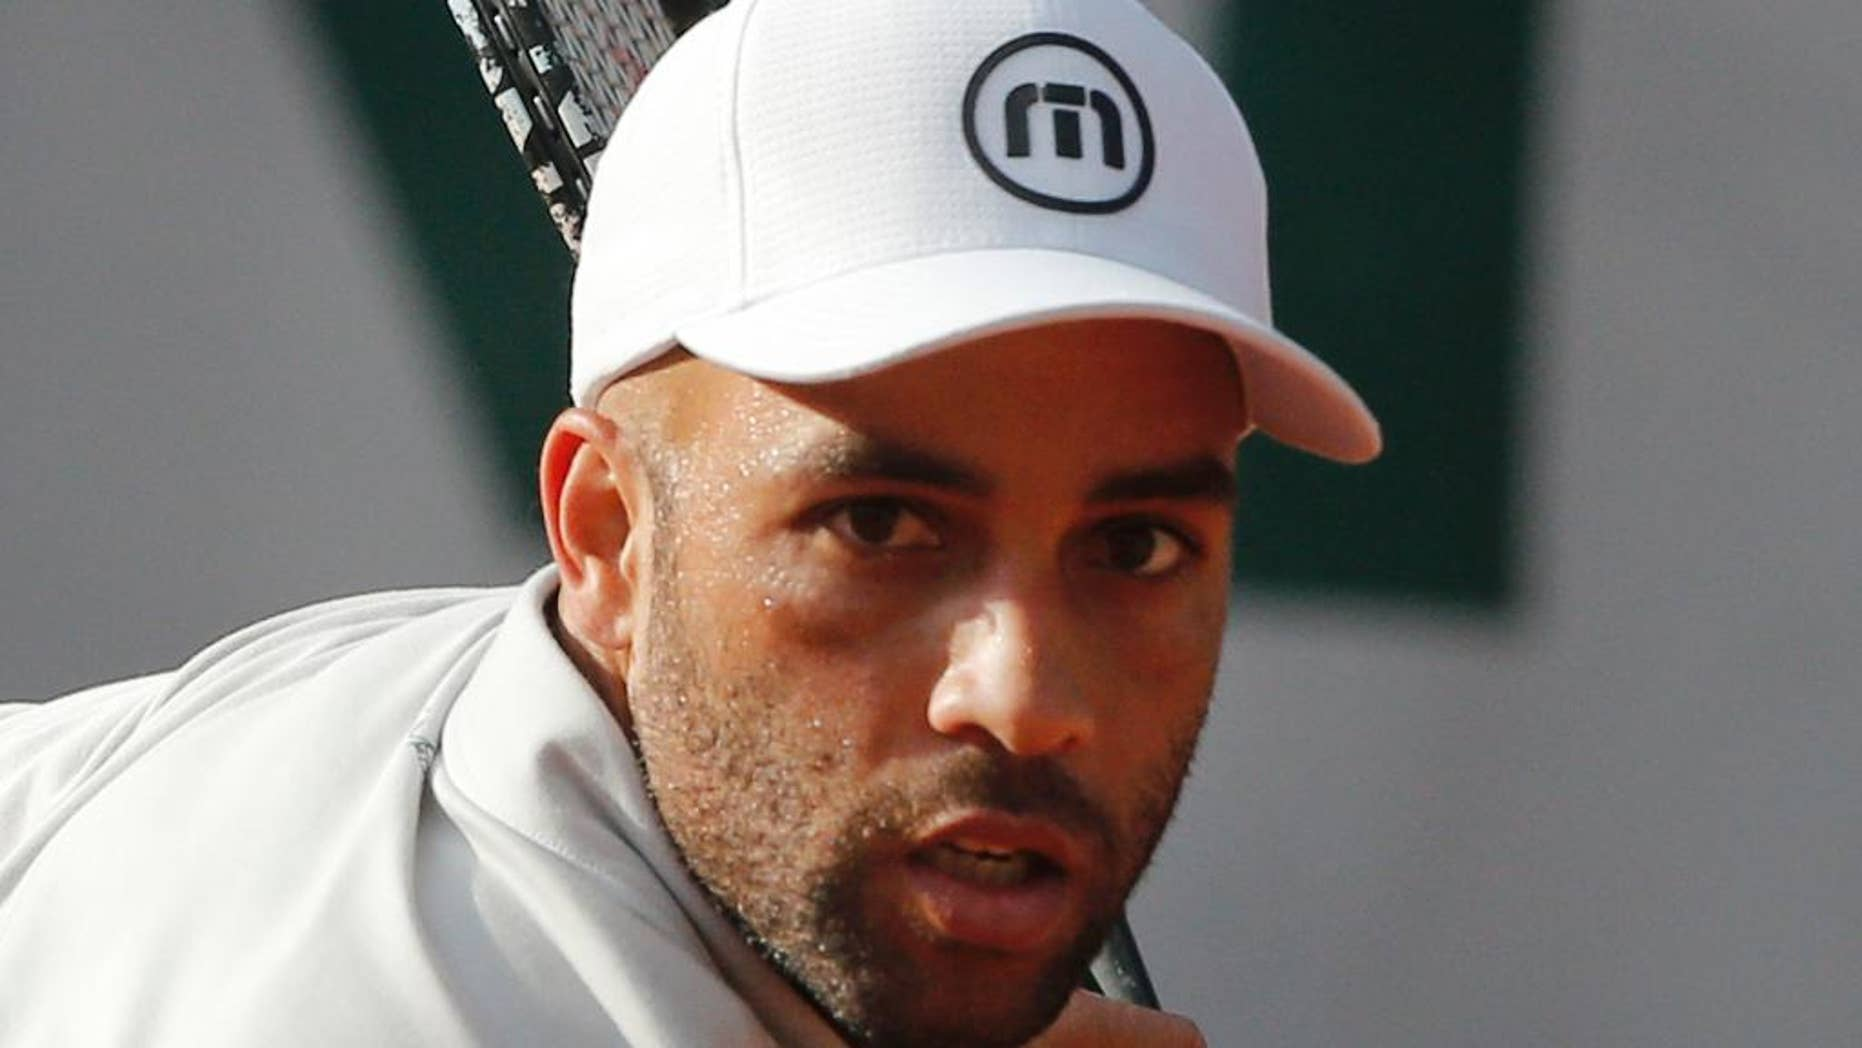 FILE - In this May 26, 2013, file photo, James Blake makes a return against Serbia's Viktor Troicki in their first round match of the French Open tennis tournament in Paris. New York City's police commissioner says he's been trying to apologize to former tennis professional James Blake, who was handcuffed by officers after a case of mistaken identity. Blake says he was standing outside a Manhattan hotel Wednesday, Sept. 9, 2015, waiting to head to the U.S. Open when an officer charging him. He says he was body-slammed and handcuffed. (AP Photo/Michel Spingler, File)